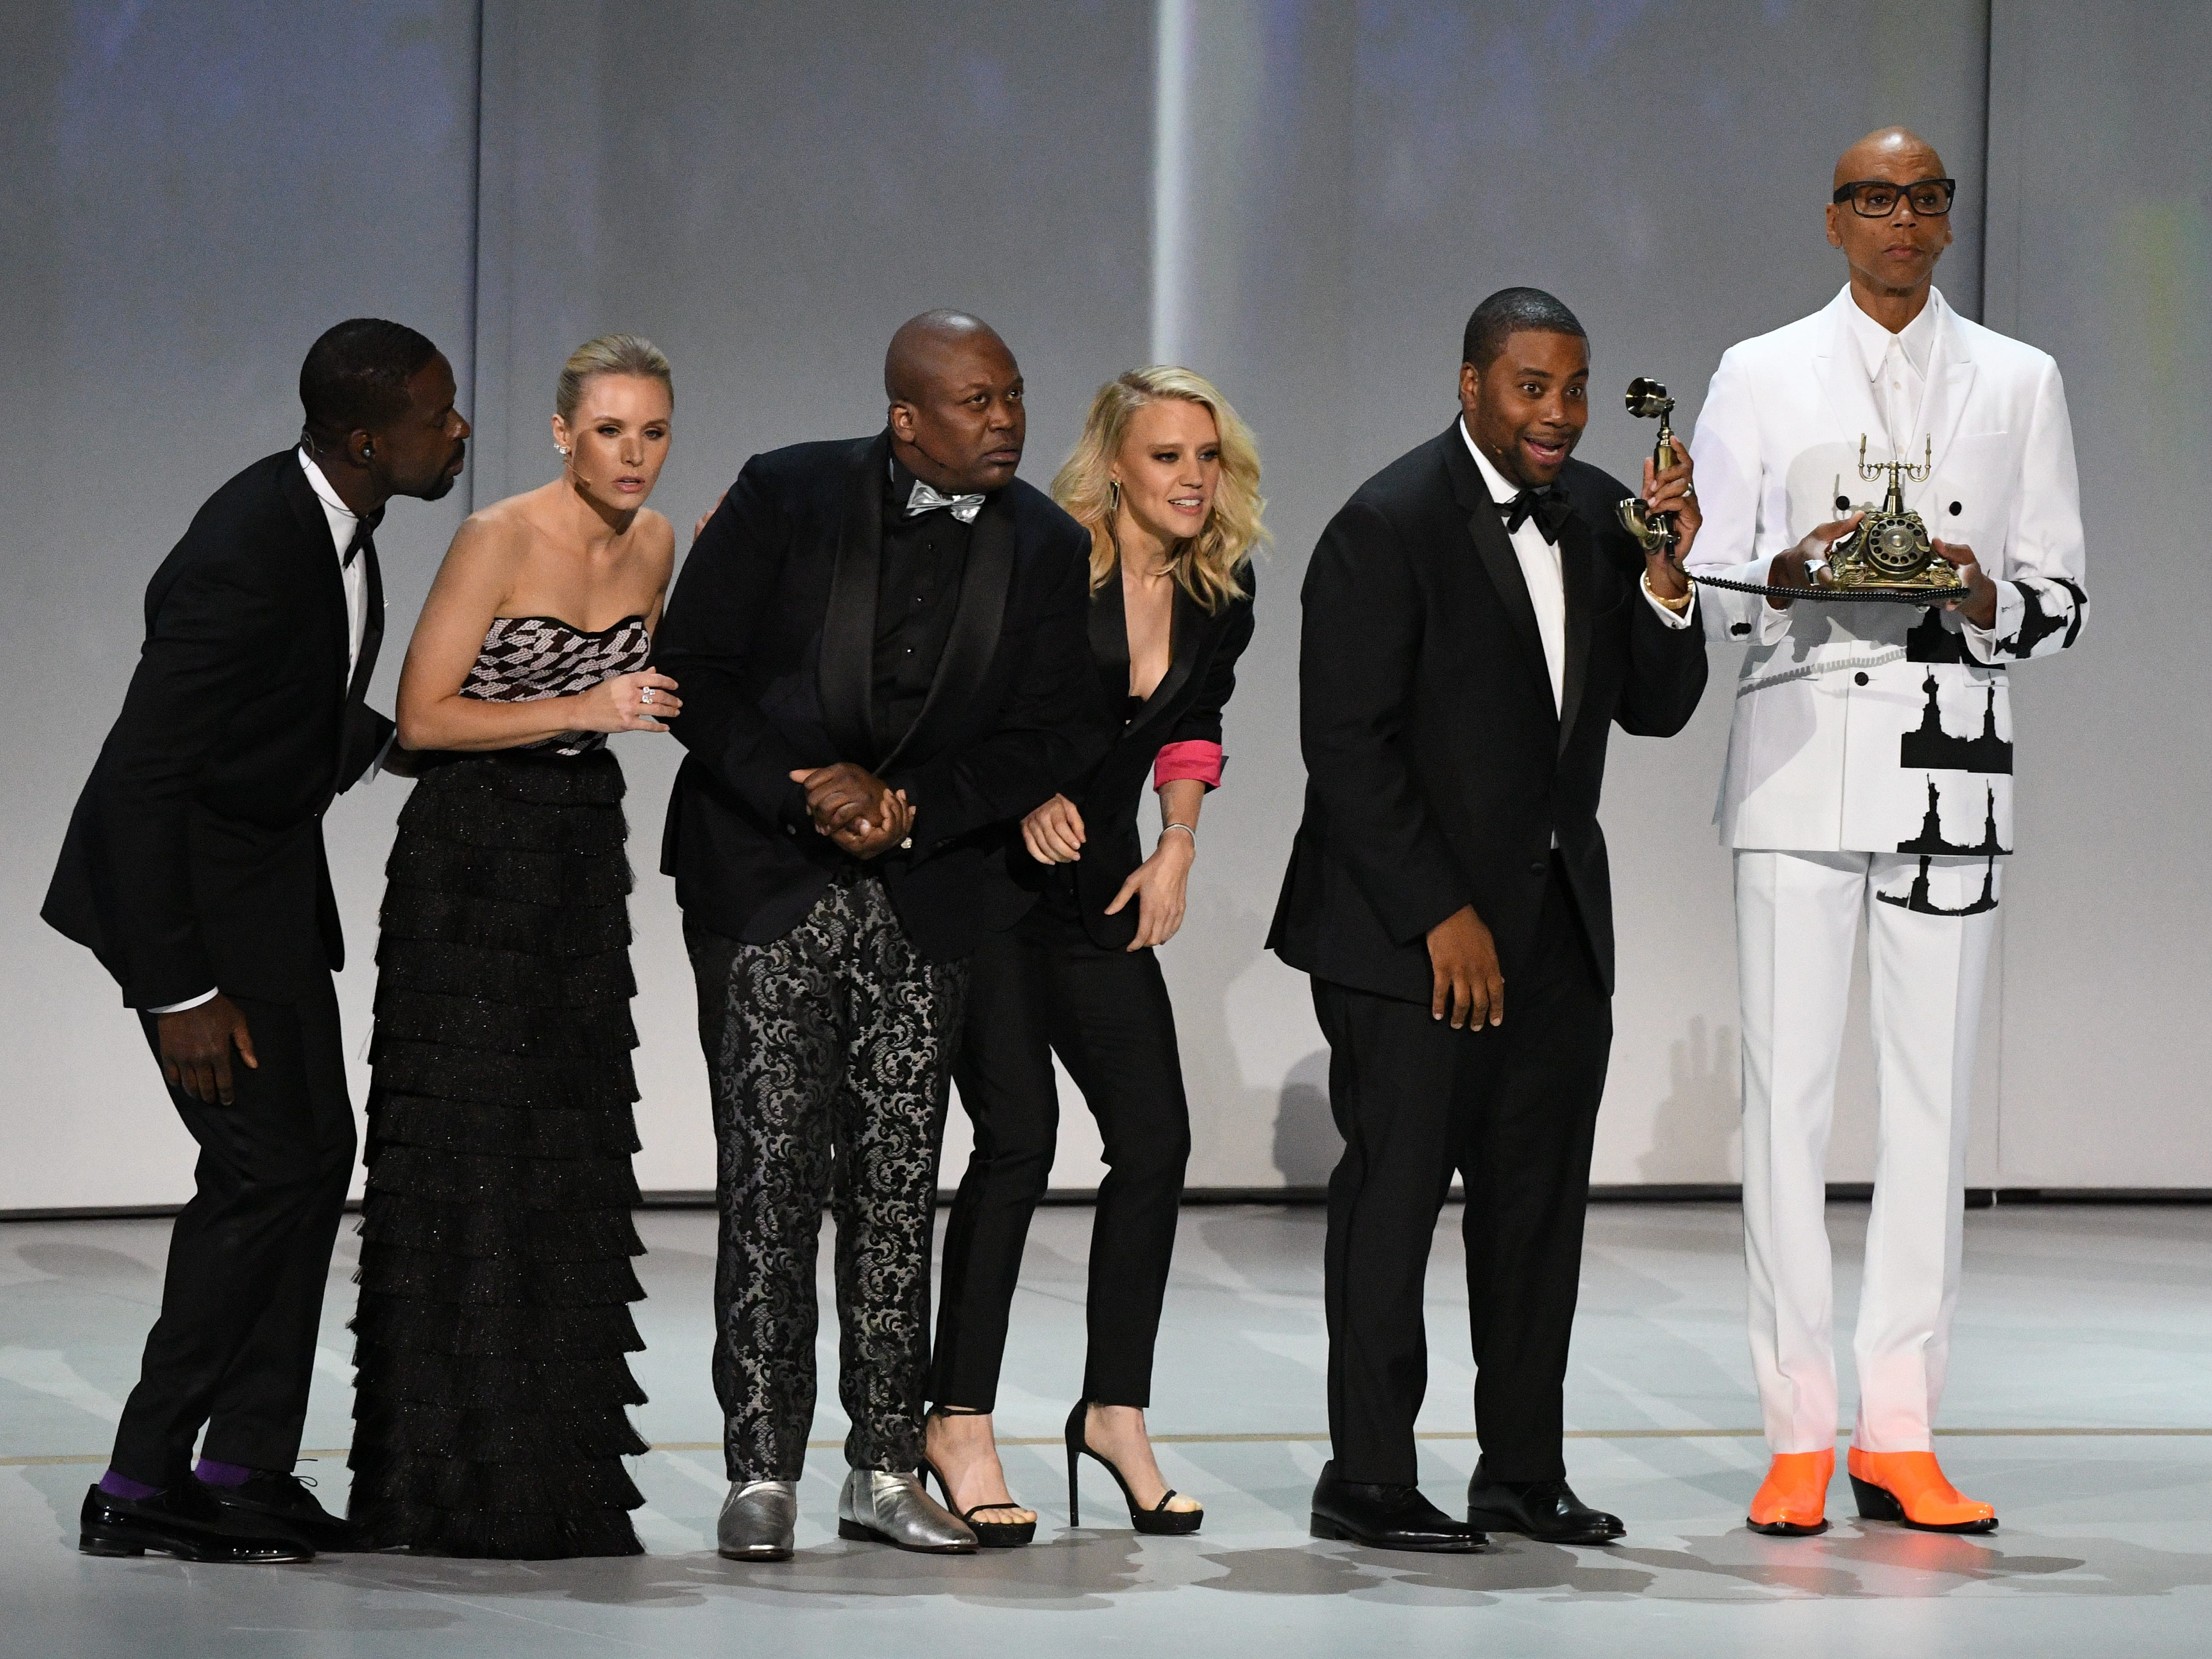 """Sterling K. Brown, Kate McKinnon, Tituss Burgess, Kristen Bell, Kenan Thompson and RuPaul Charles perform """"We Solved It"""" during the show opening."""